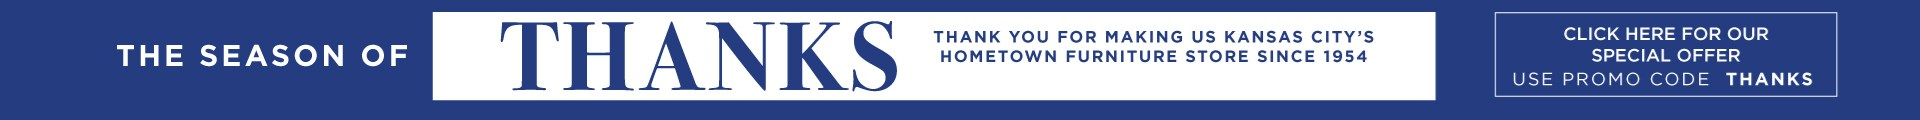 The Season of Thanks | Thank you for making us Kansas City's hometown furniture store since 1954 | Click here to see our special offer